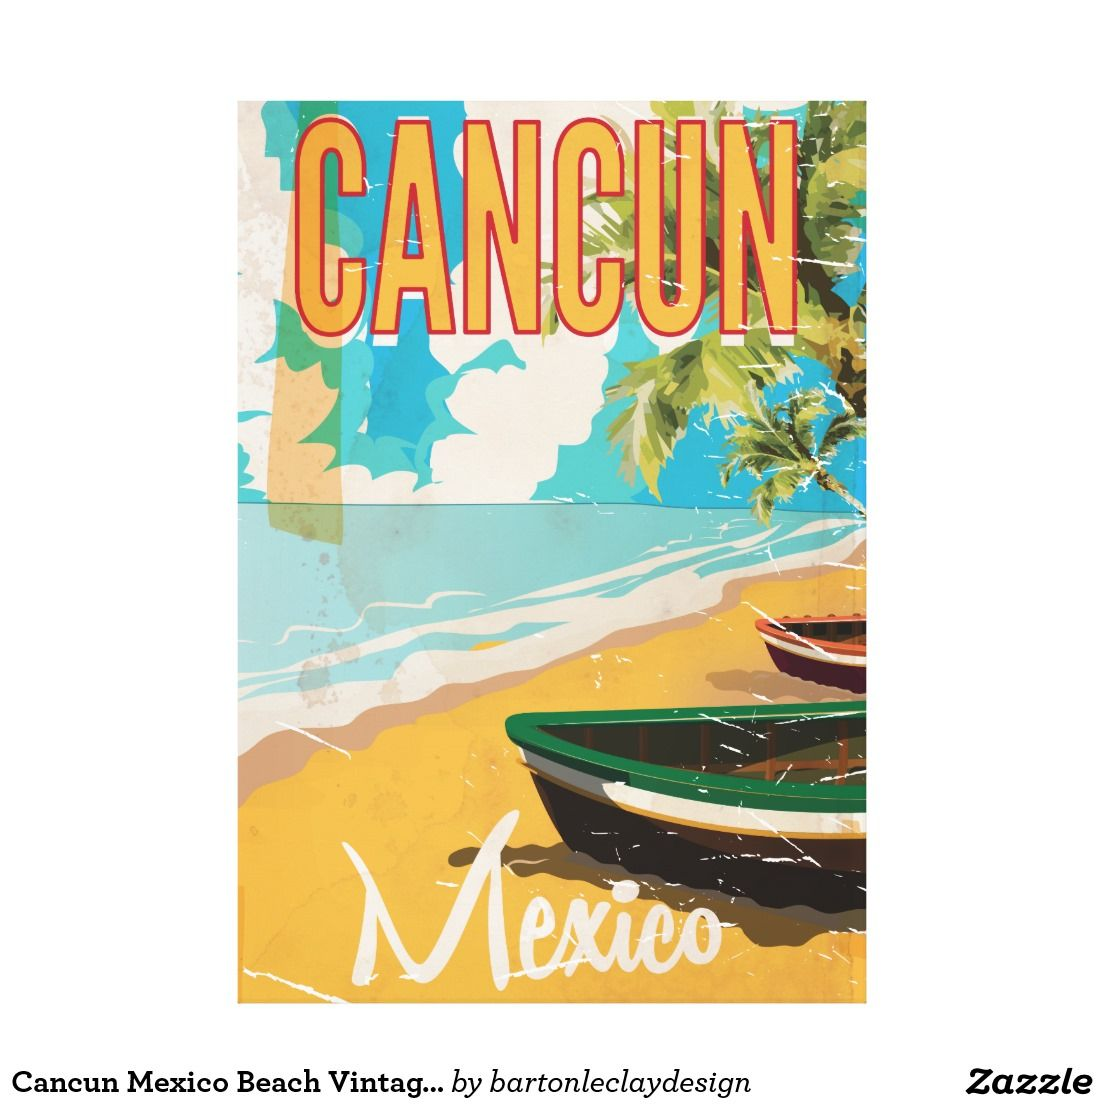 Cancun Mexico Beach Vintage Travel Poster Print Zazzle Com Vintage Travel Posters Poster Prints Travel Posters